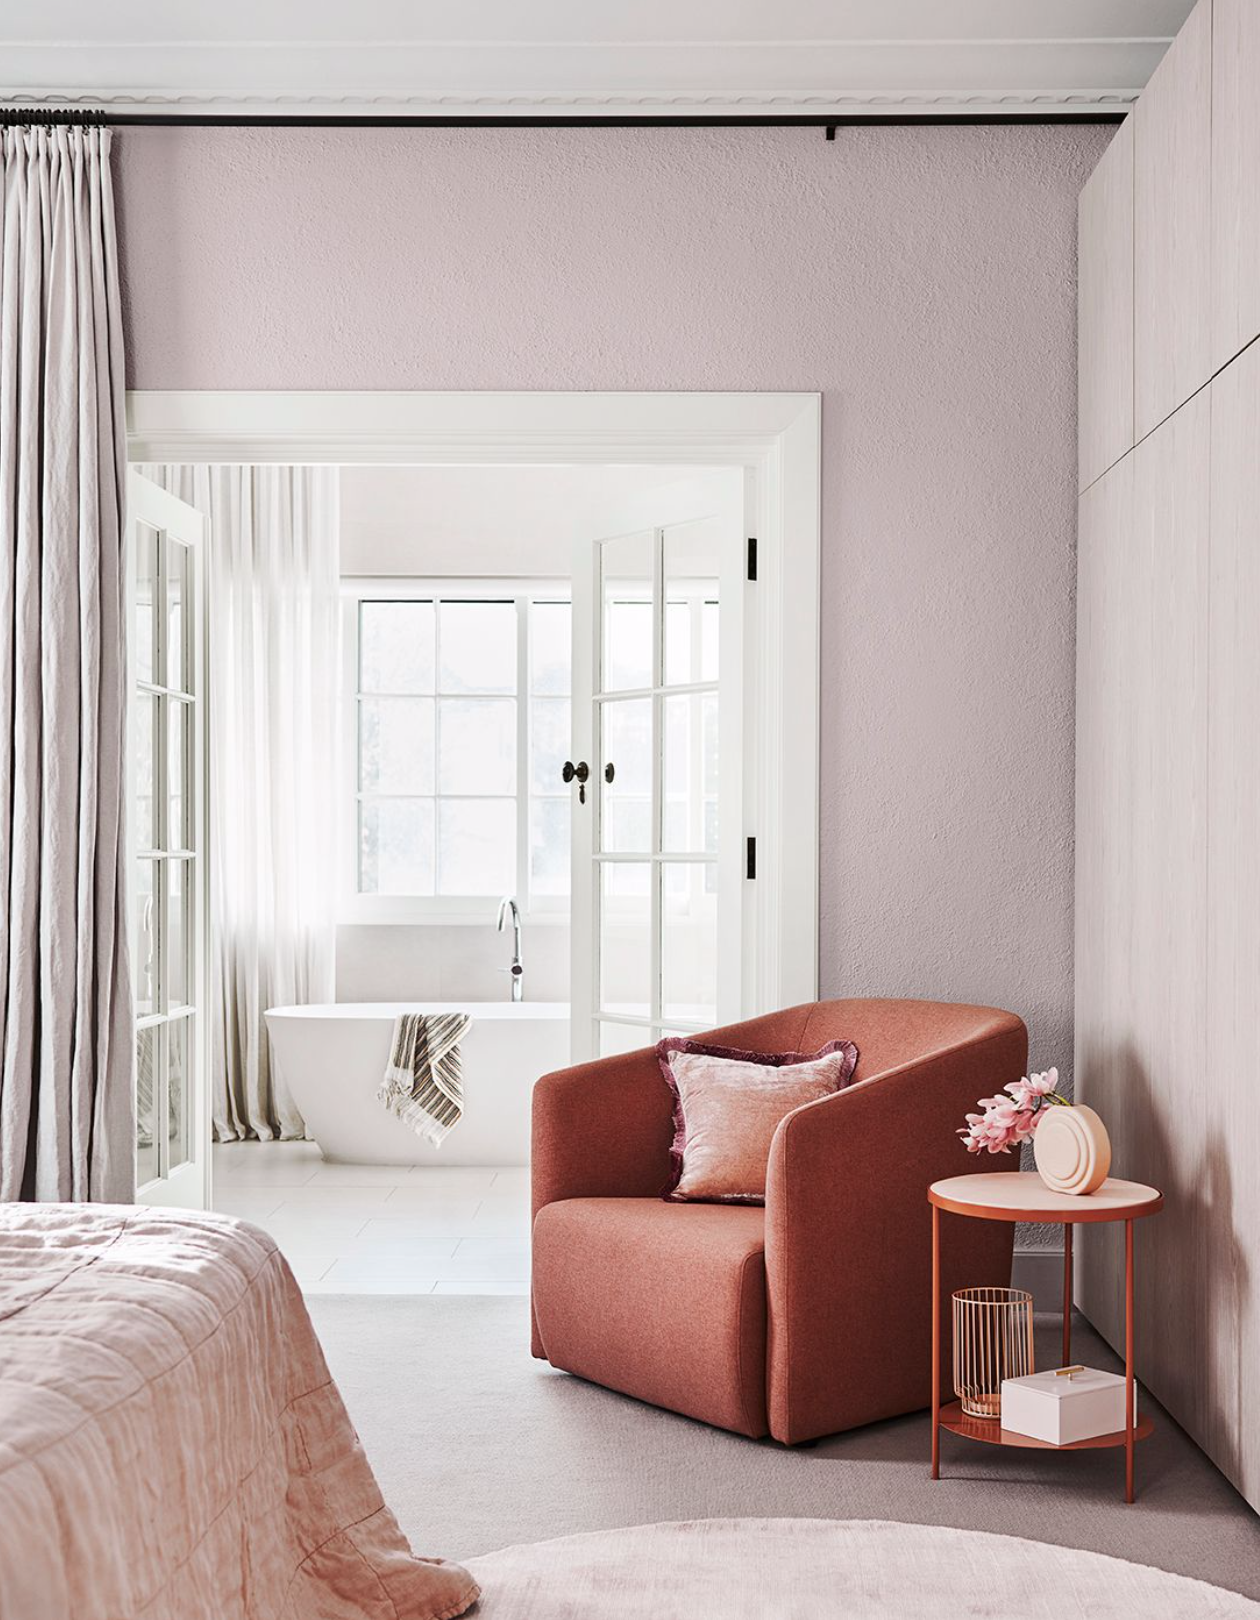 Eclectic Trends | 4 Color Trends 2020 Dulux Australia- Indulge